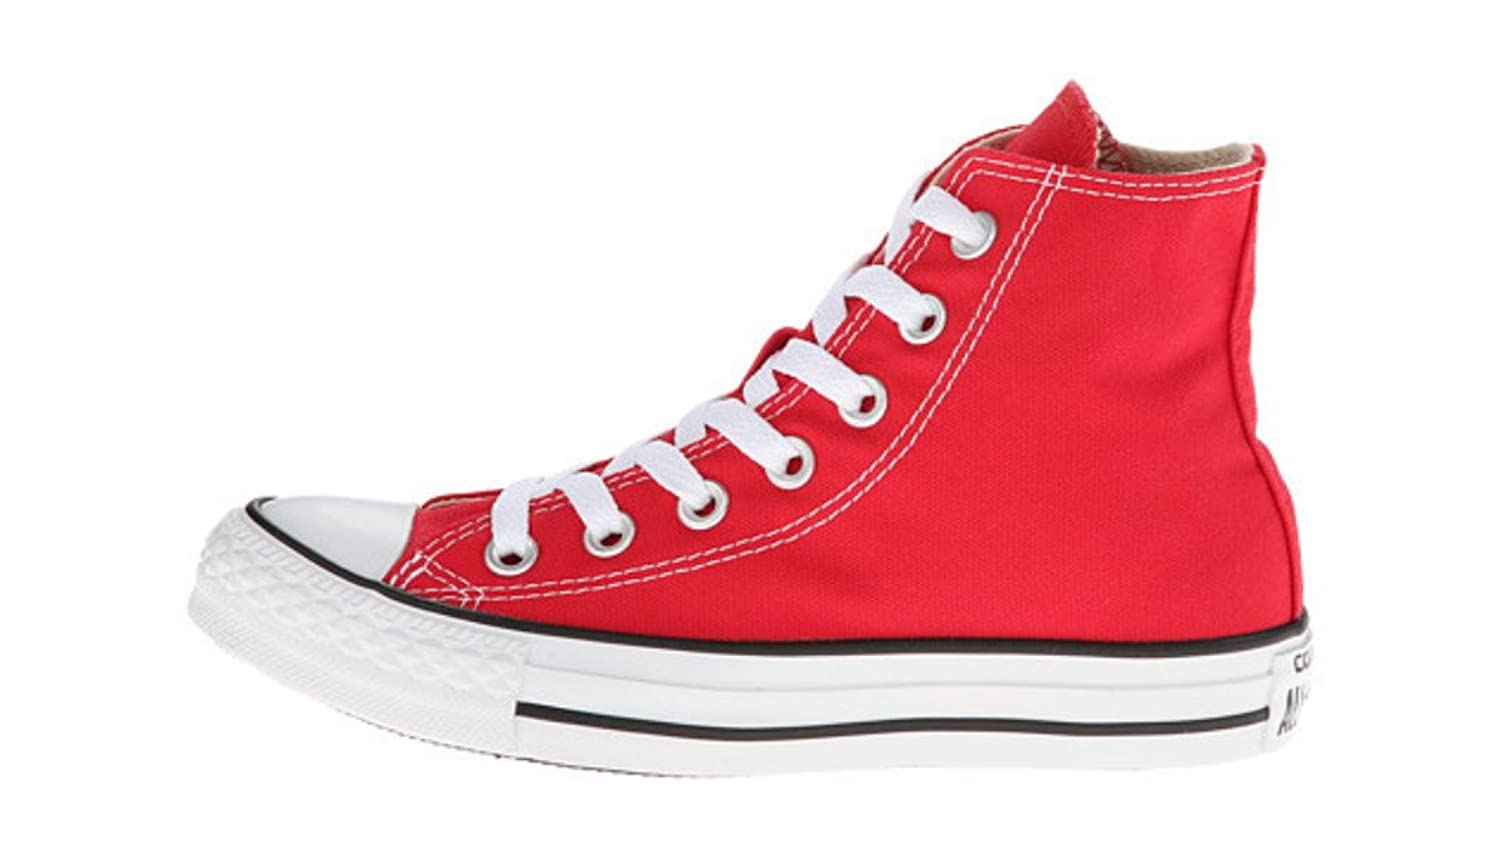 ad723c28ccb416 Converse Chuck Taylor All Star High Top Core Colors (4 D(M) US